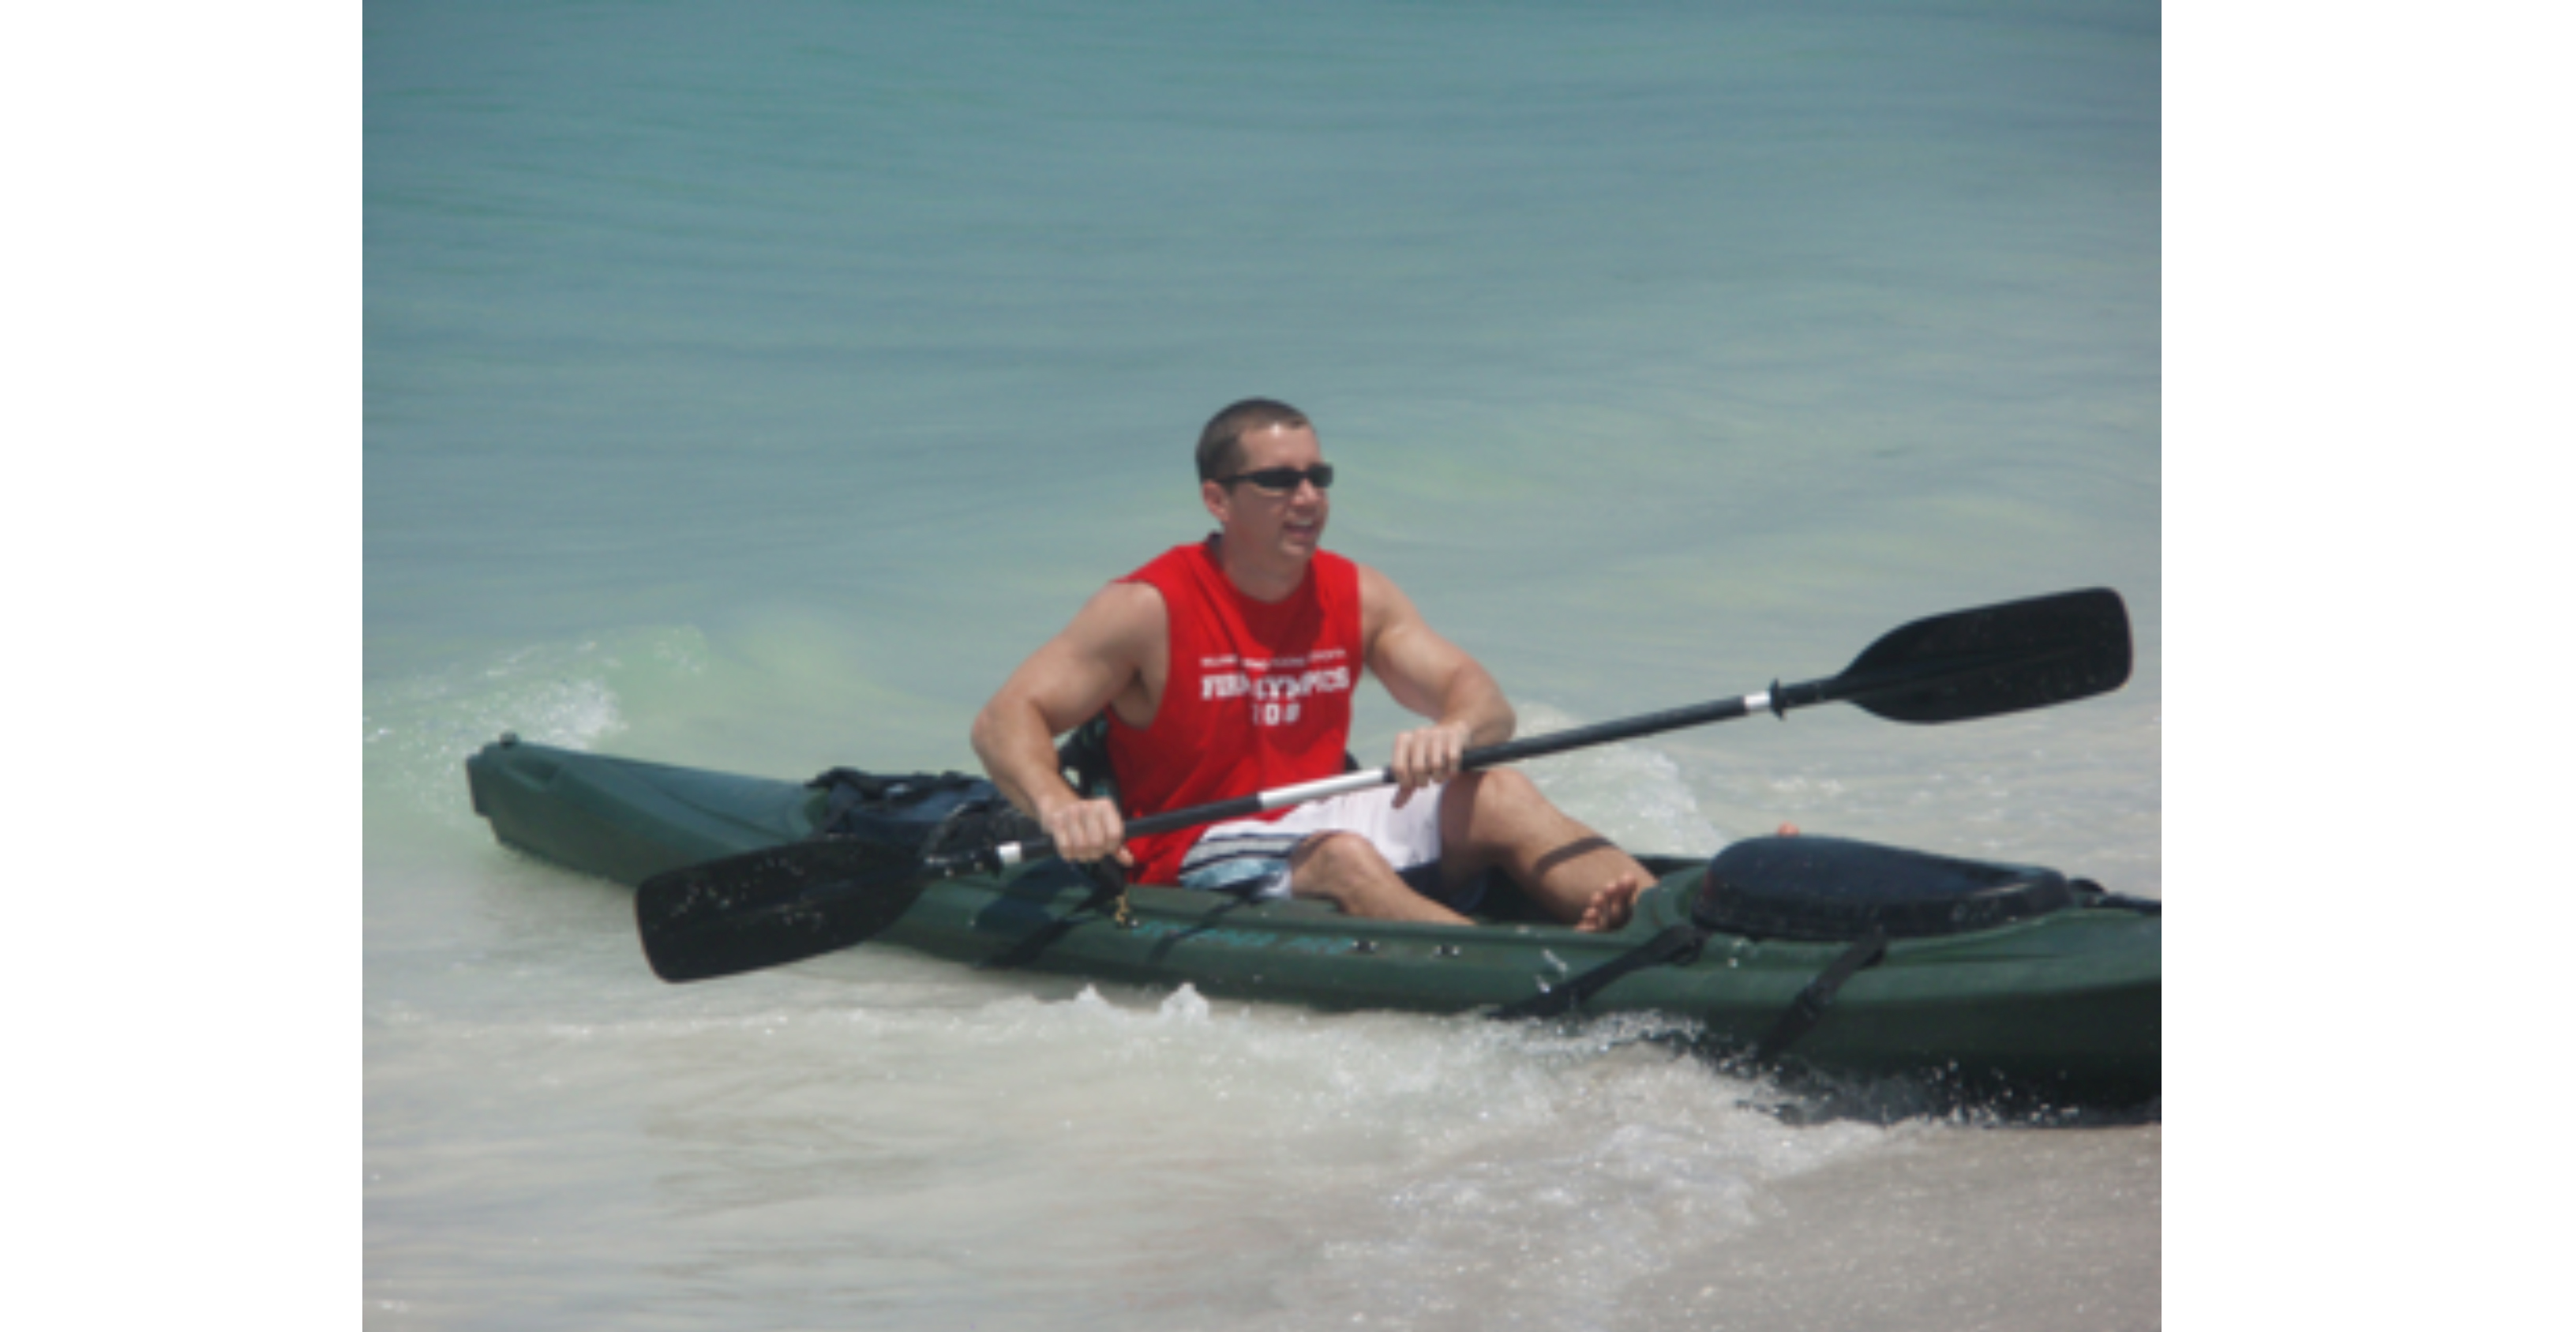 Daniel Dietric of Burr Forman is kayaking in open water